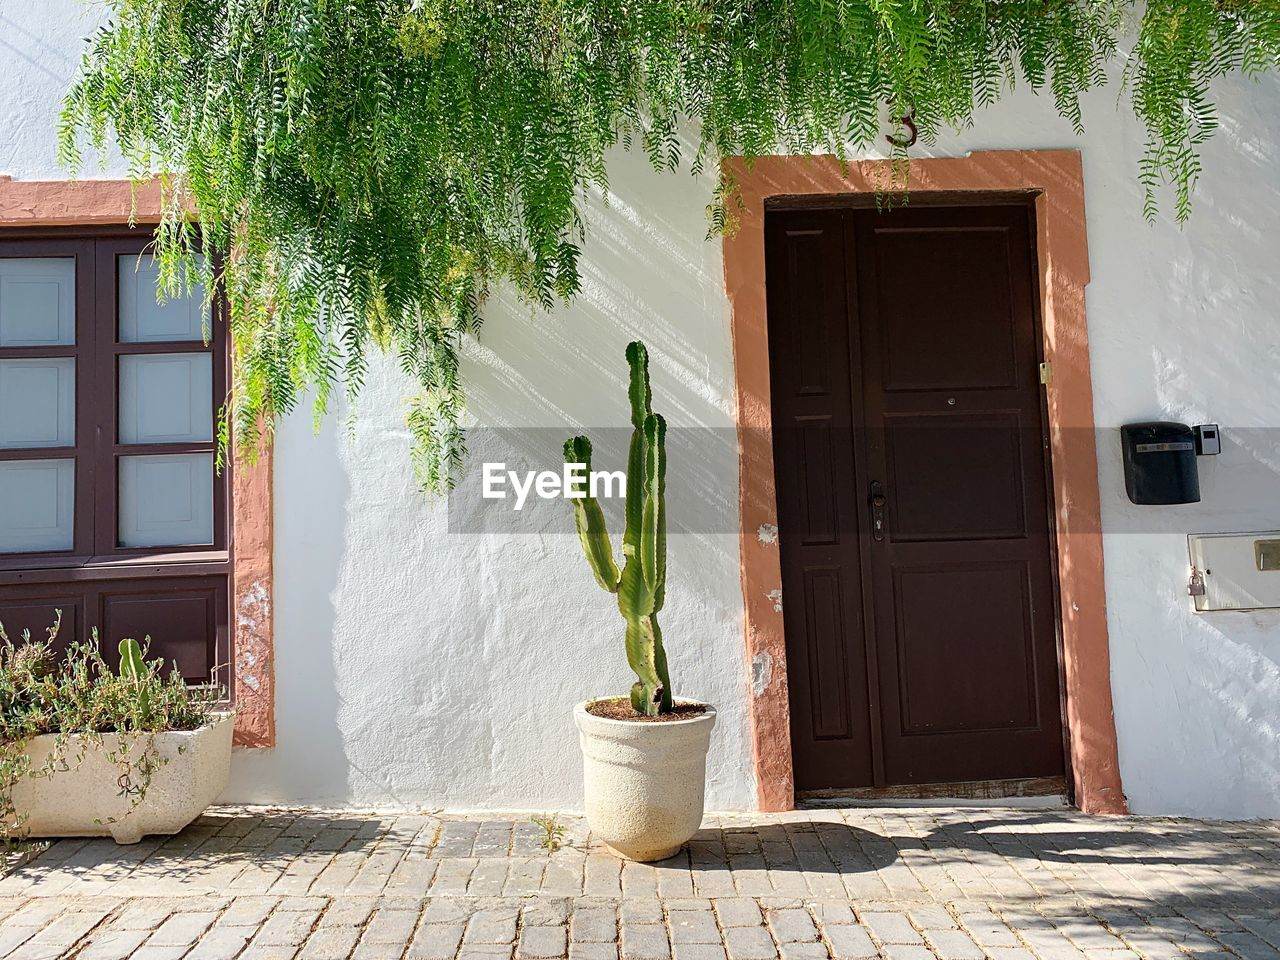 plant, architecture, house, building, built structure, building exterior, entrance, potted plant, nature, door, growth, tree, day, sunlight, outdoors, no people, residential district, window, green color, wall - building feature, flower pot, houseplant